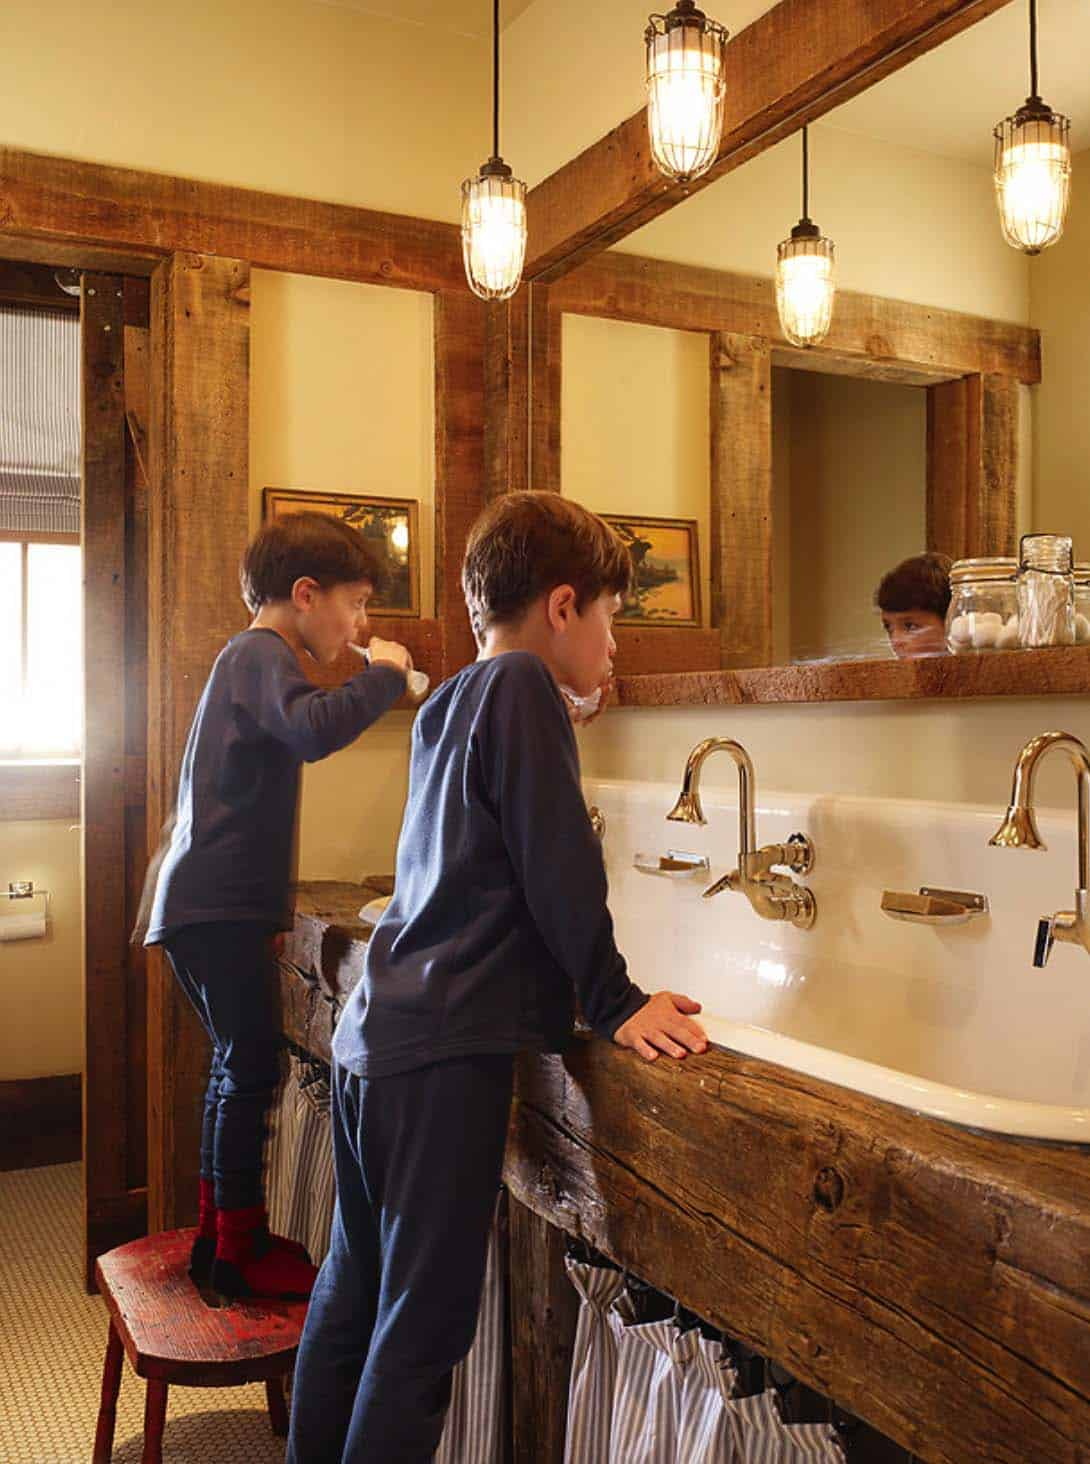 rustic-kids-bathroom